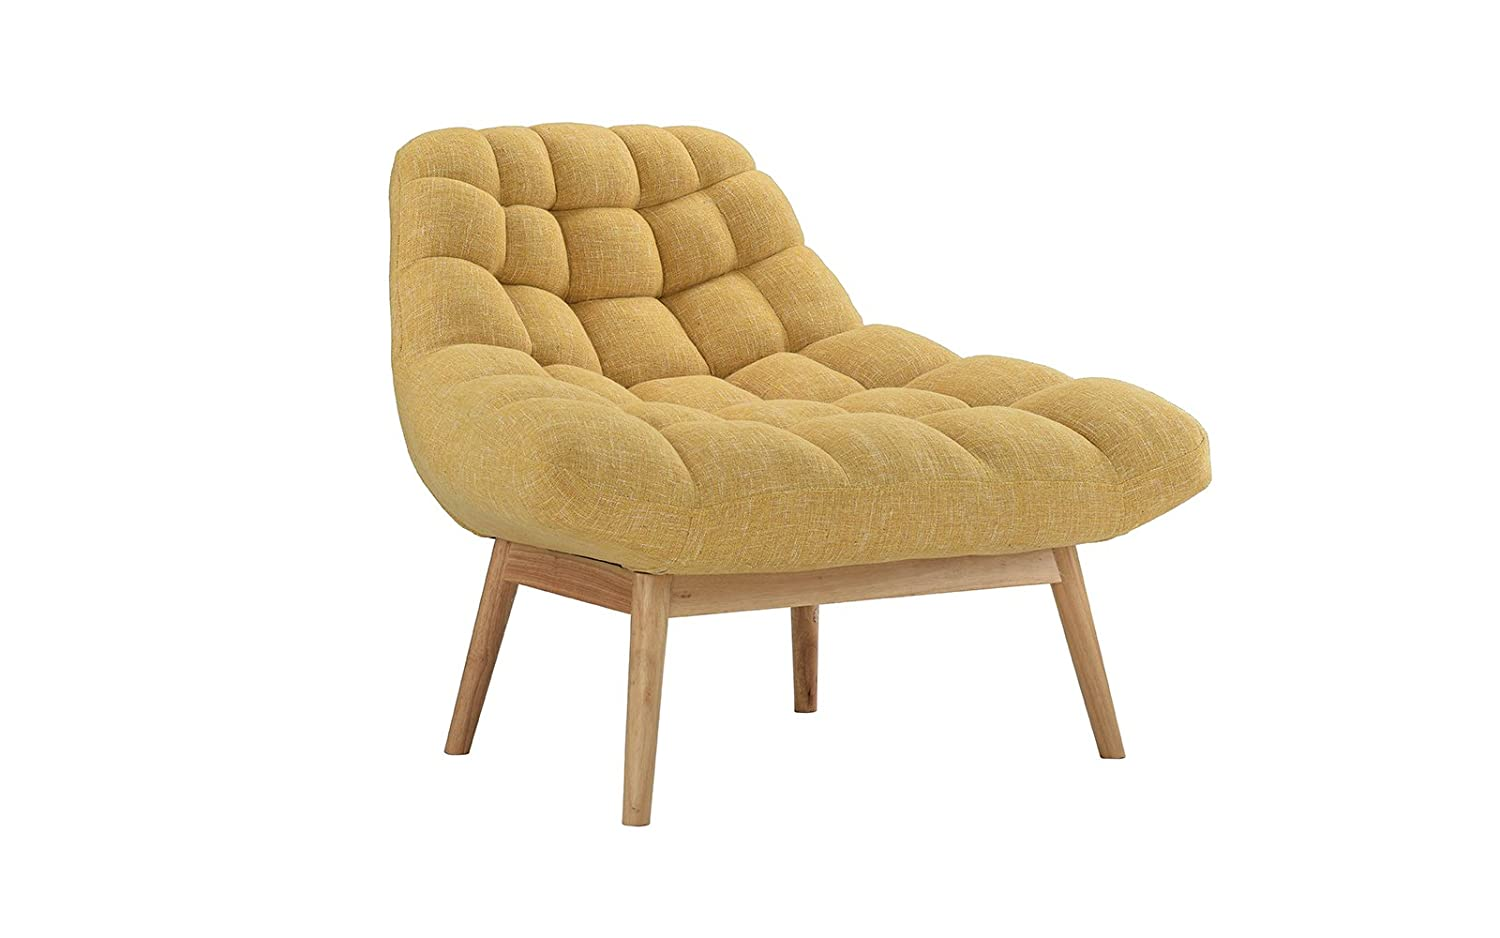 Amazon.com: Modern Linen Plush Living Room Lounge Accent Chair (Yellow): Kitchen & Dining